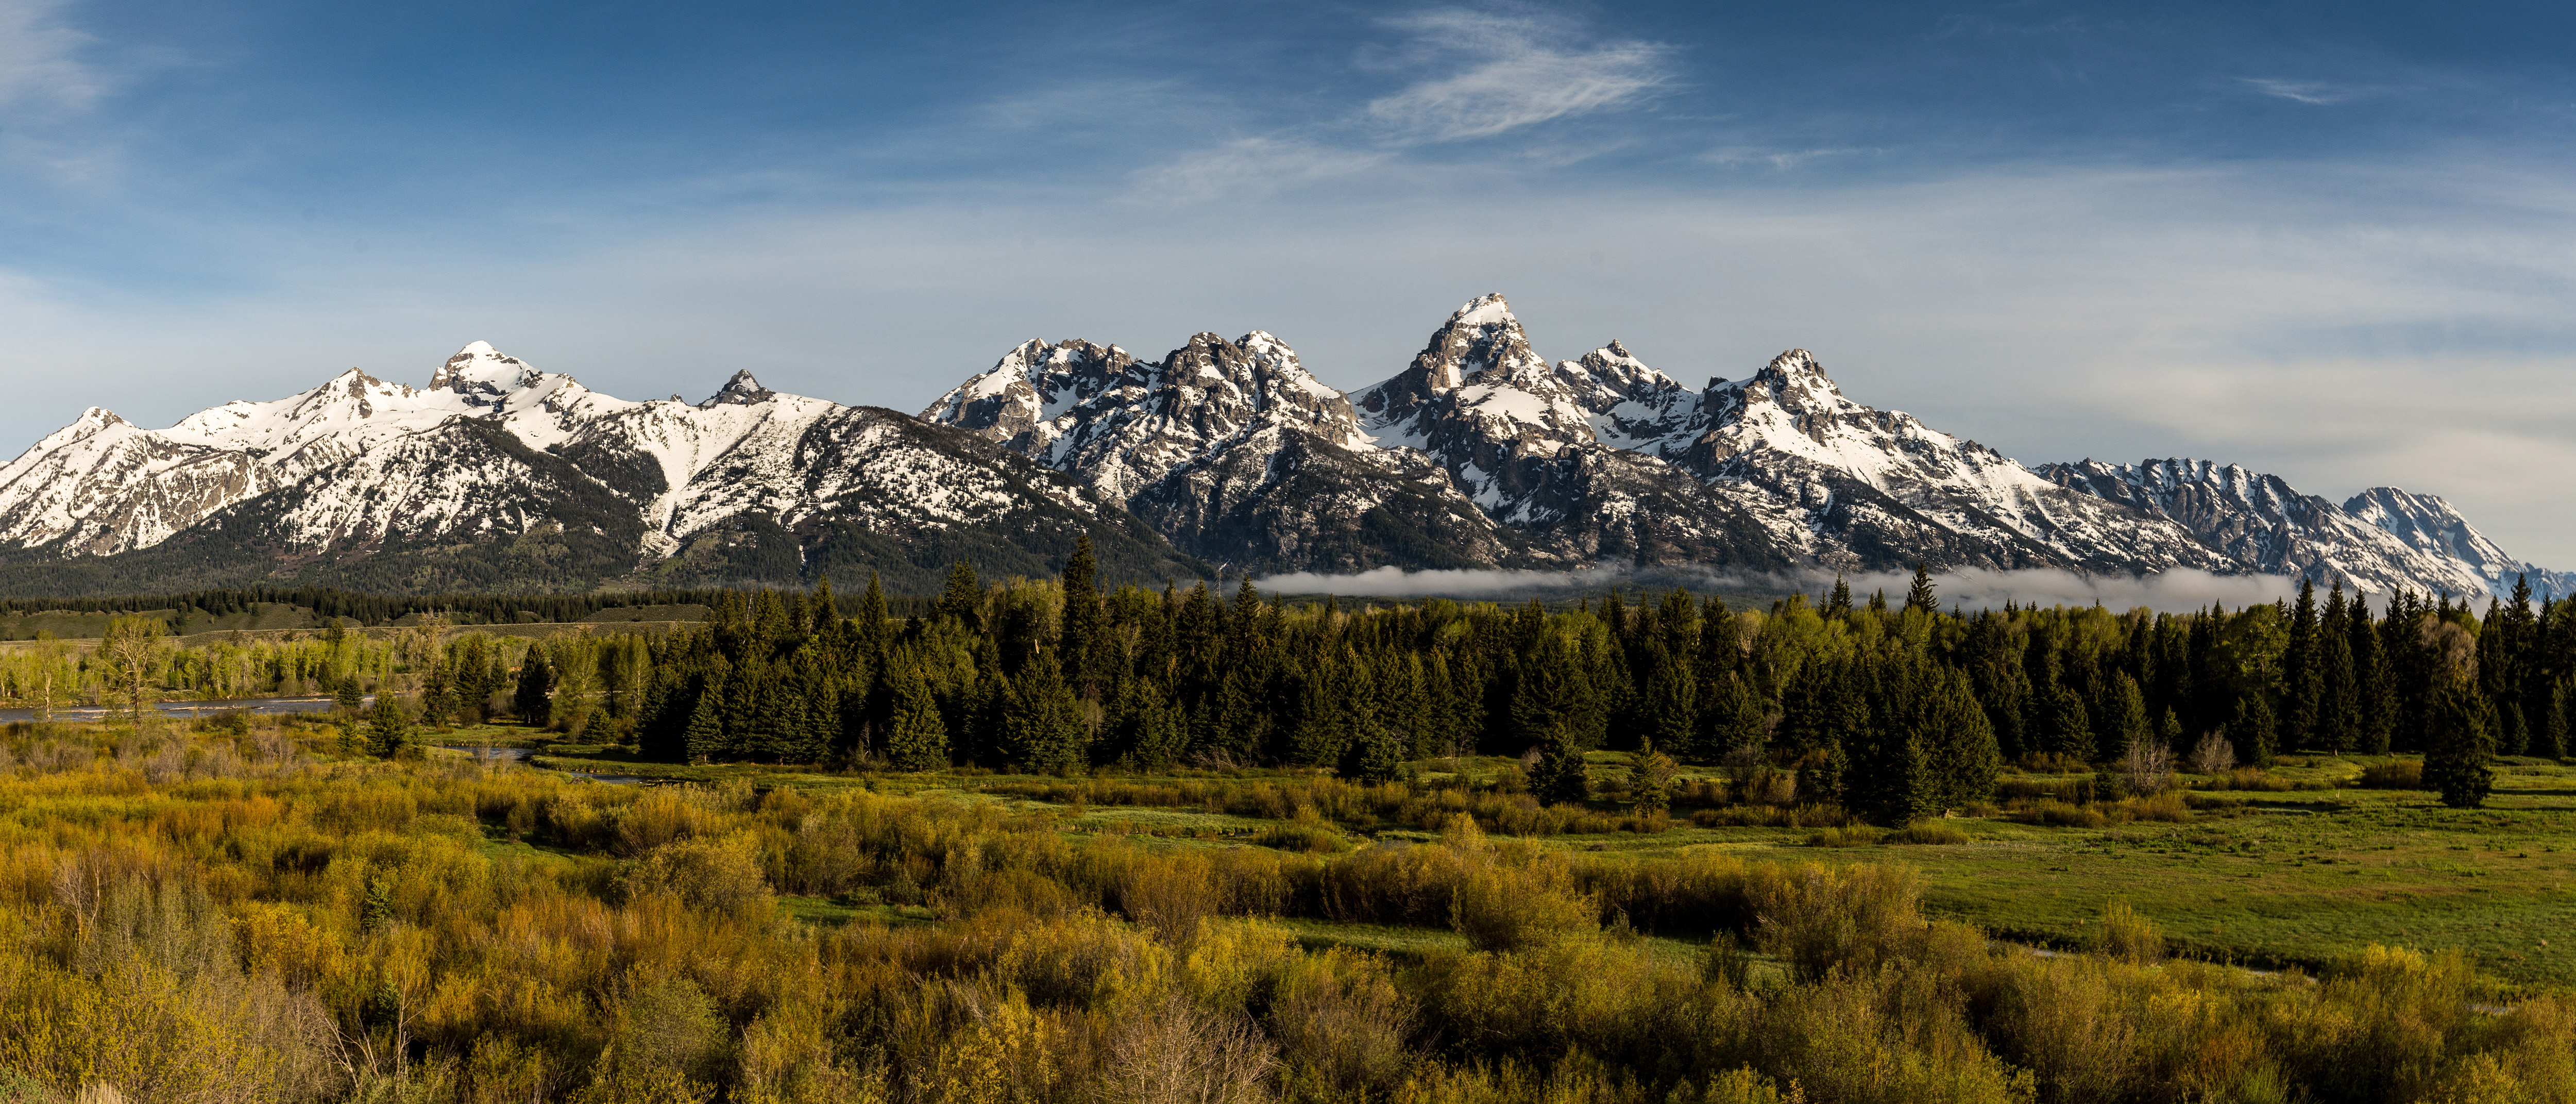 snow capped mountains landscape in grand teton national park image